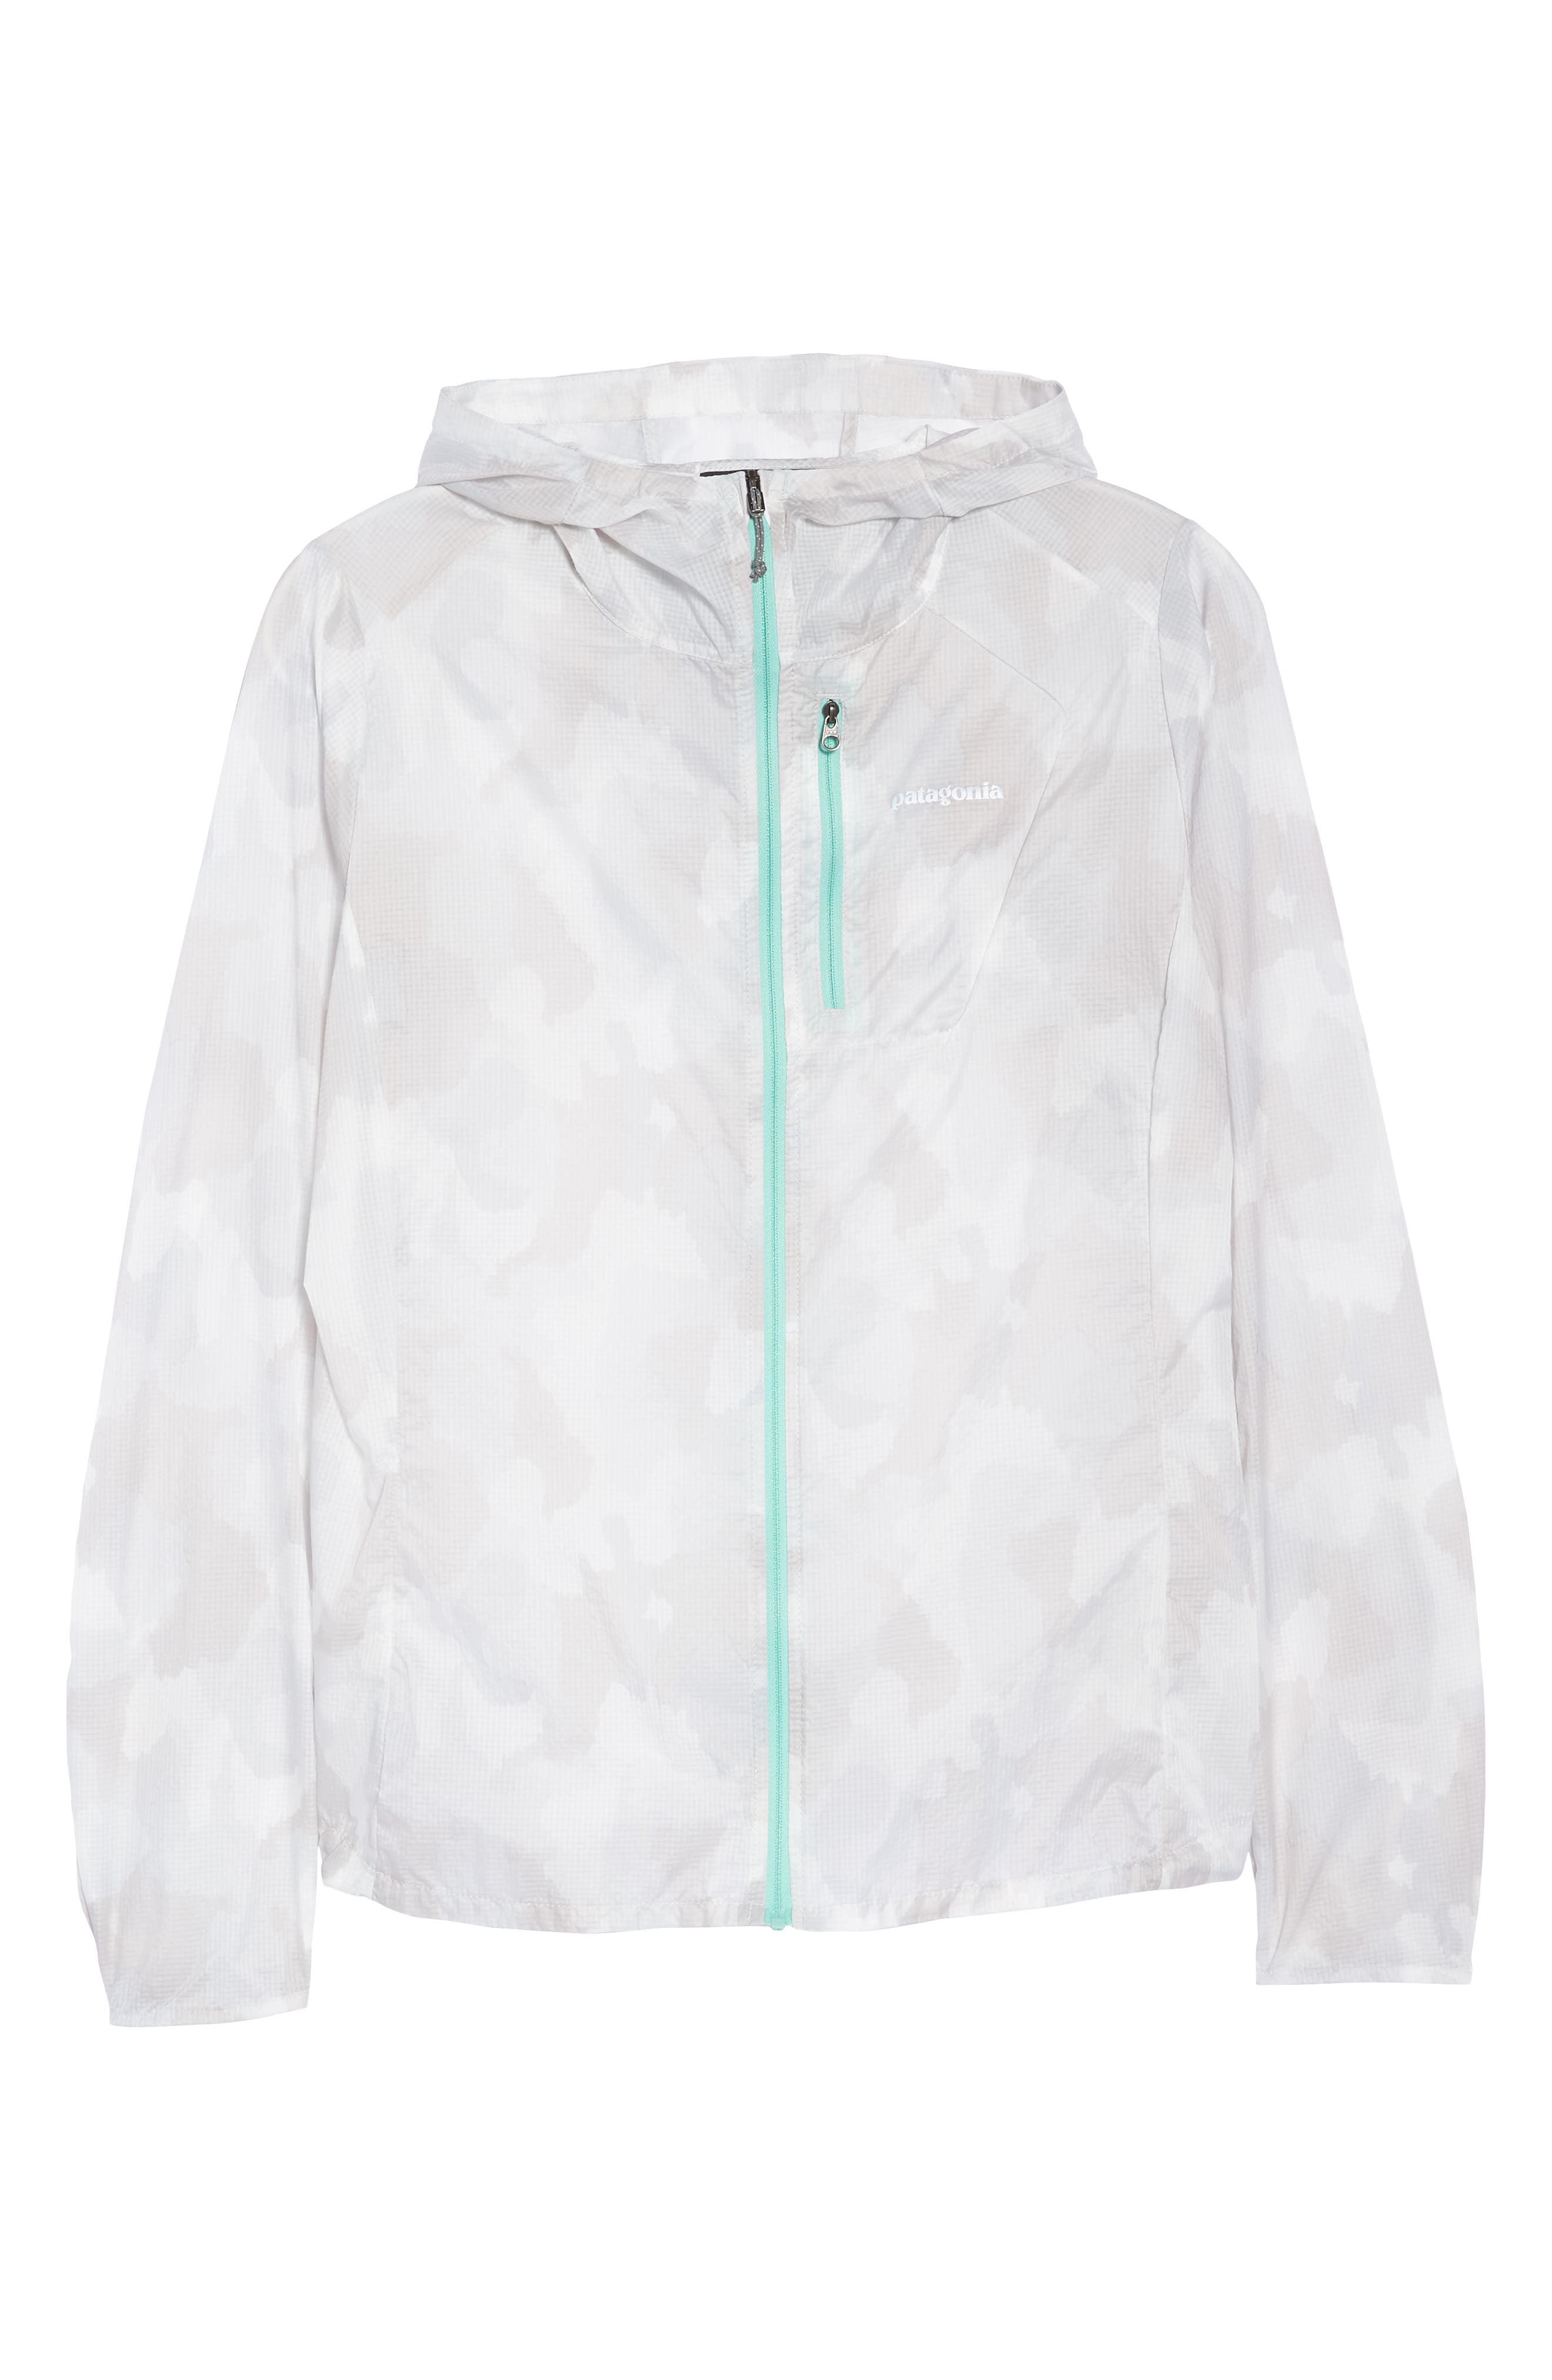 Houdini Water Repellent Jacket,                             Alternate thumbnail 6, color,                             BUNKER CAMO TAILORED GREY